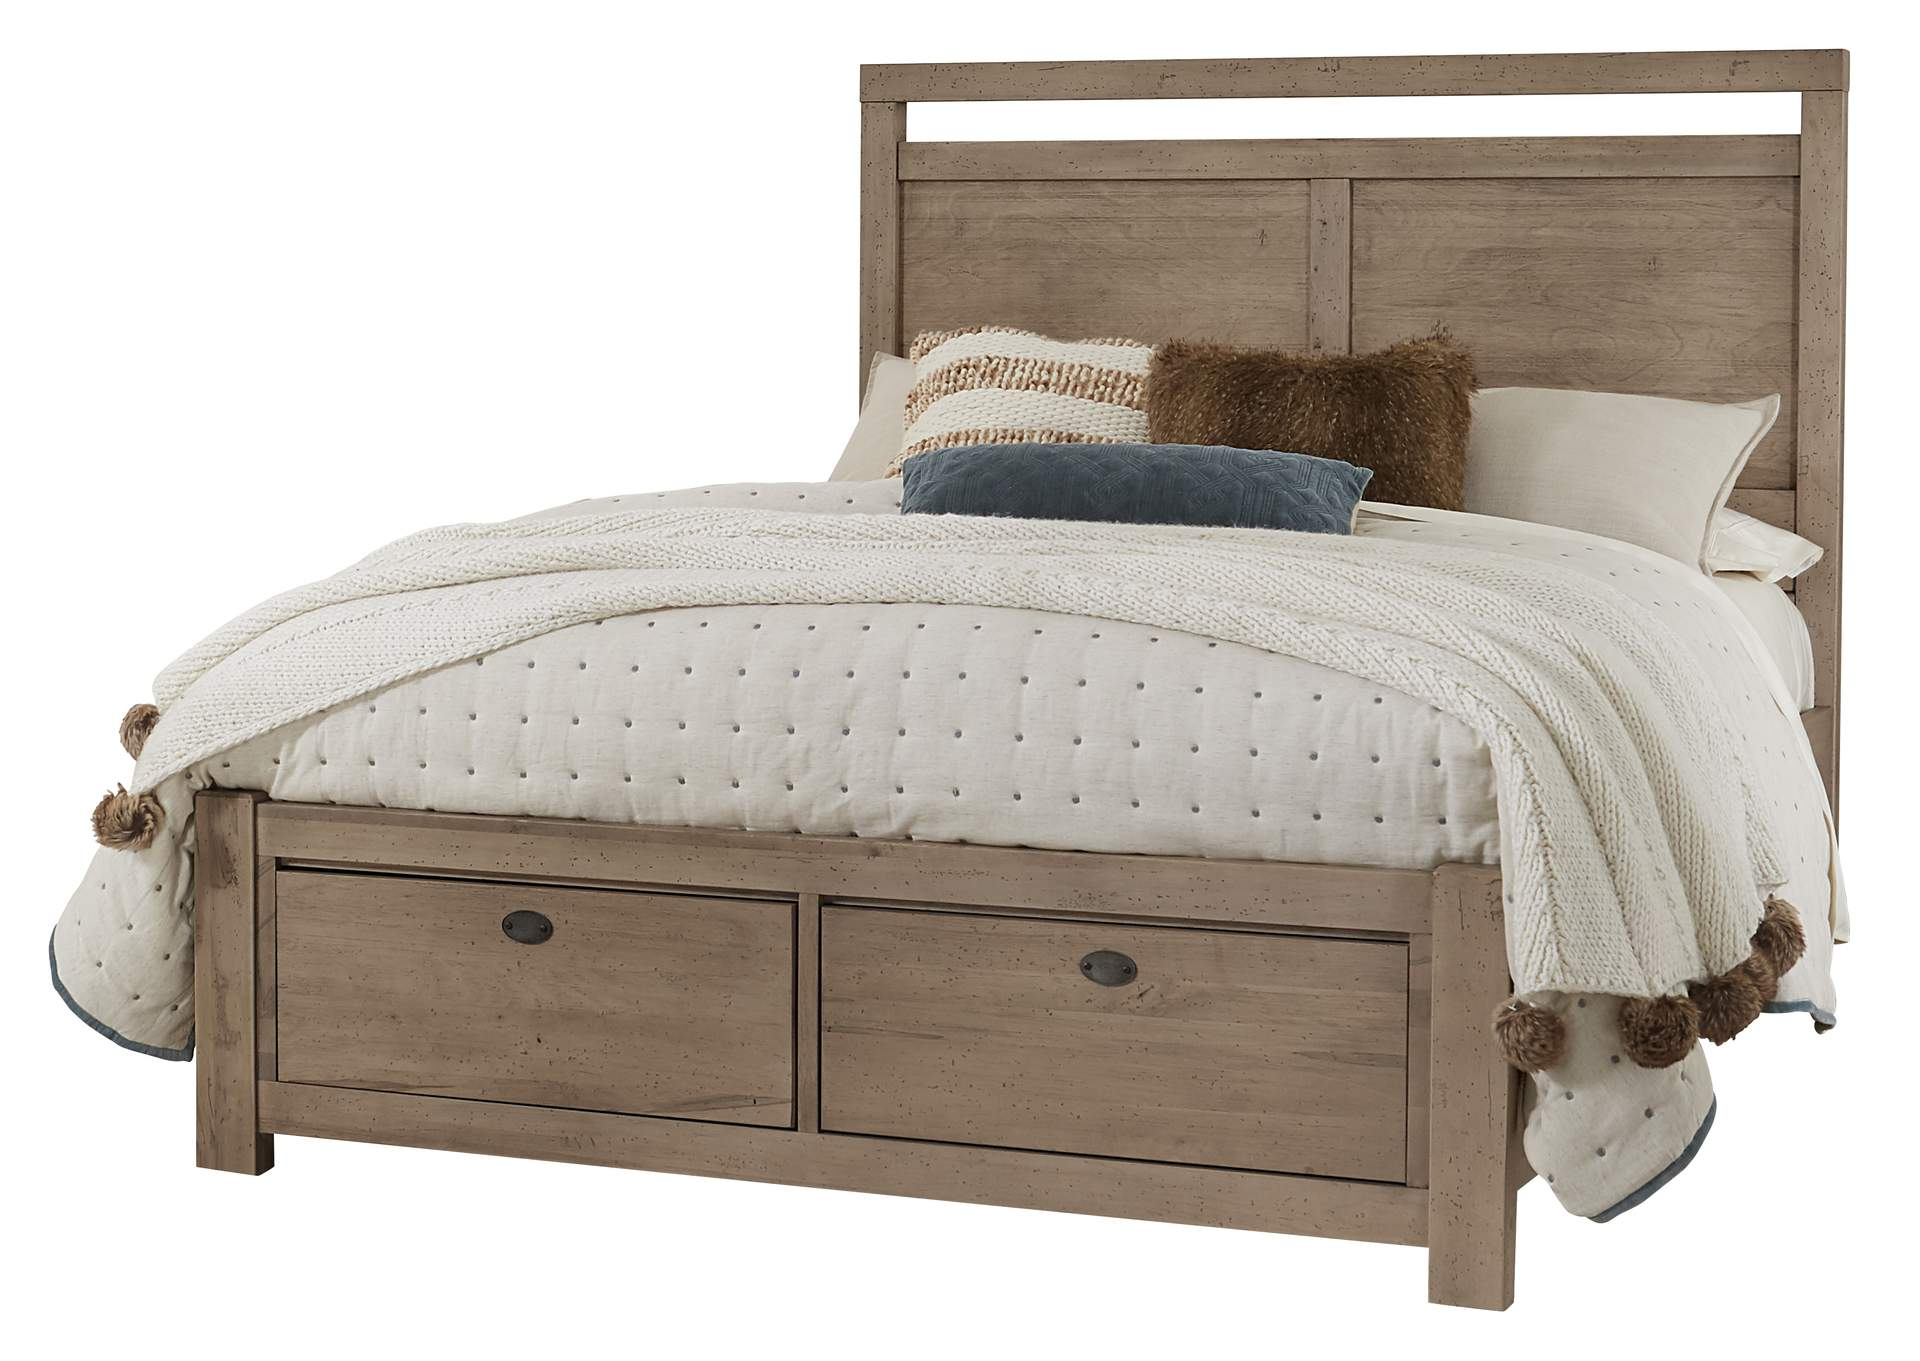 touche canted plank queen bed storage ivan smith